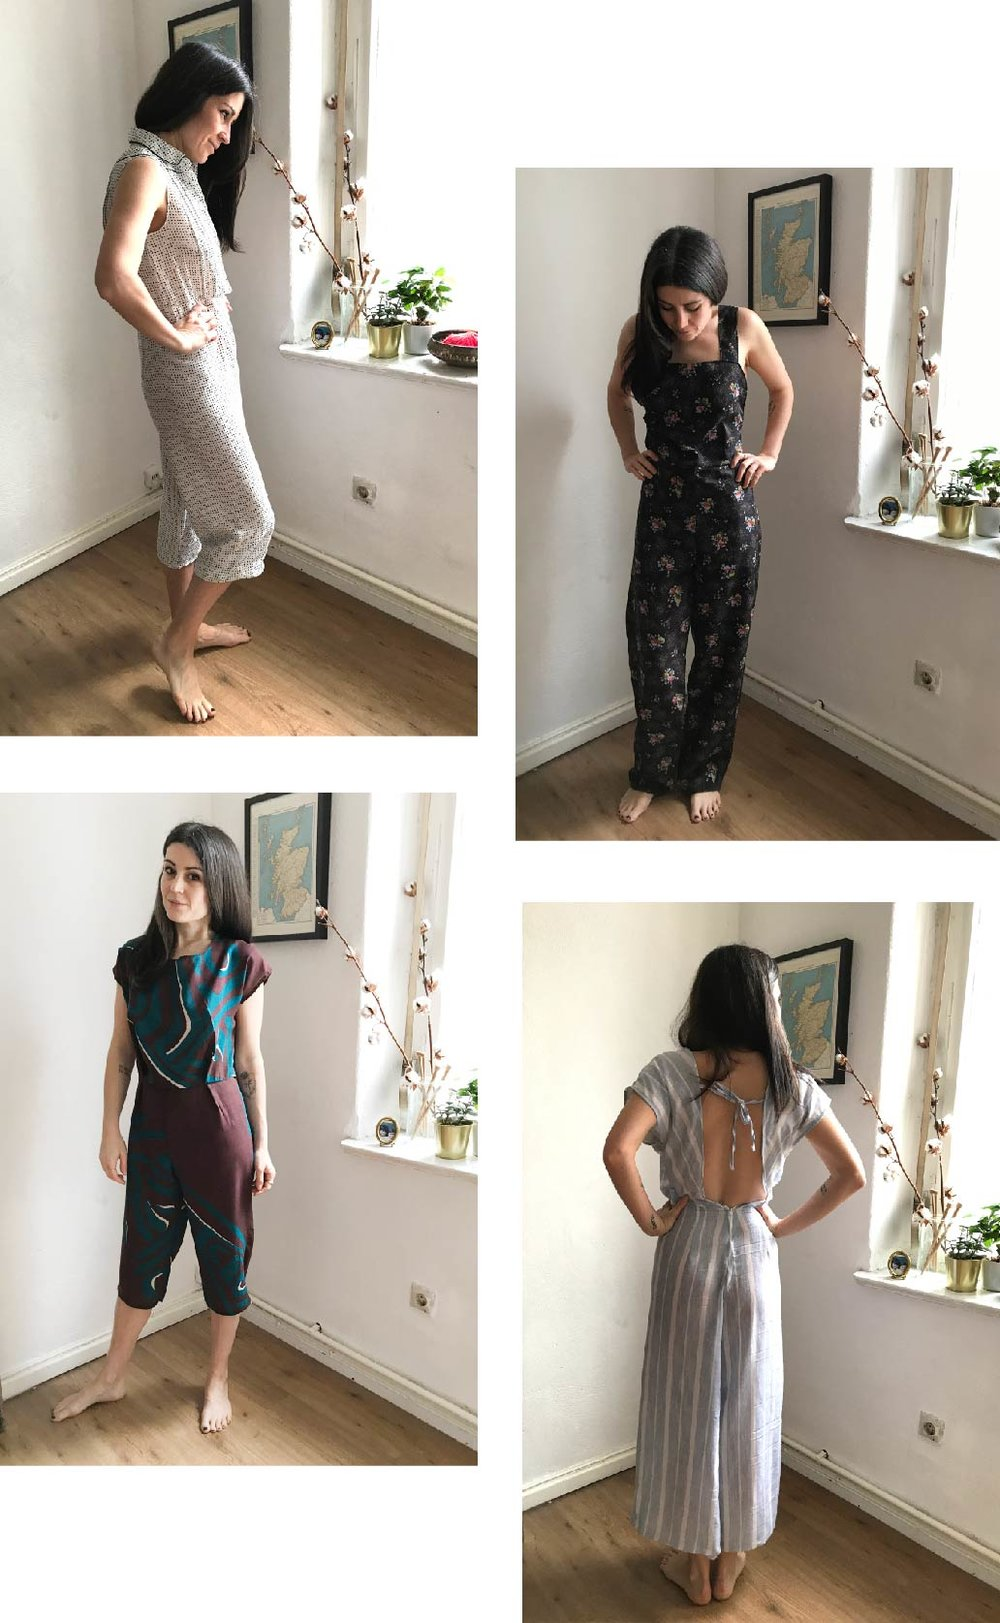 vic_n_lily_salvage jumpsuits-03.jpg